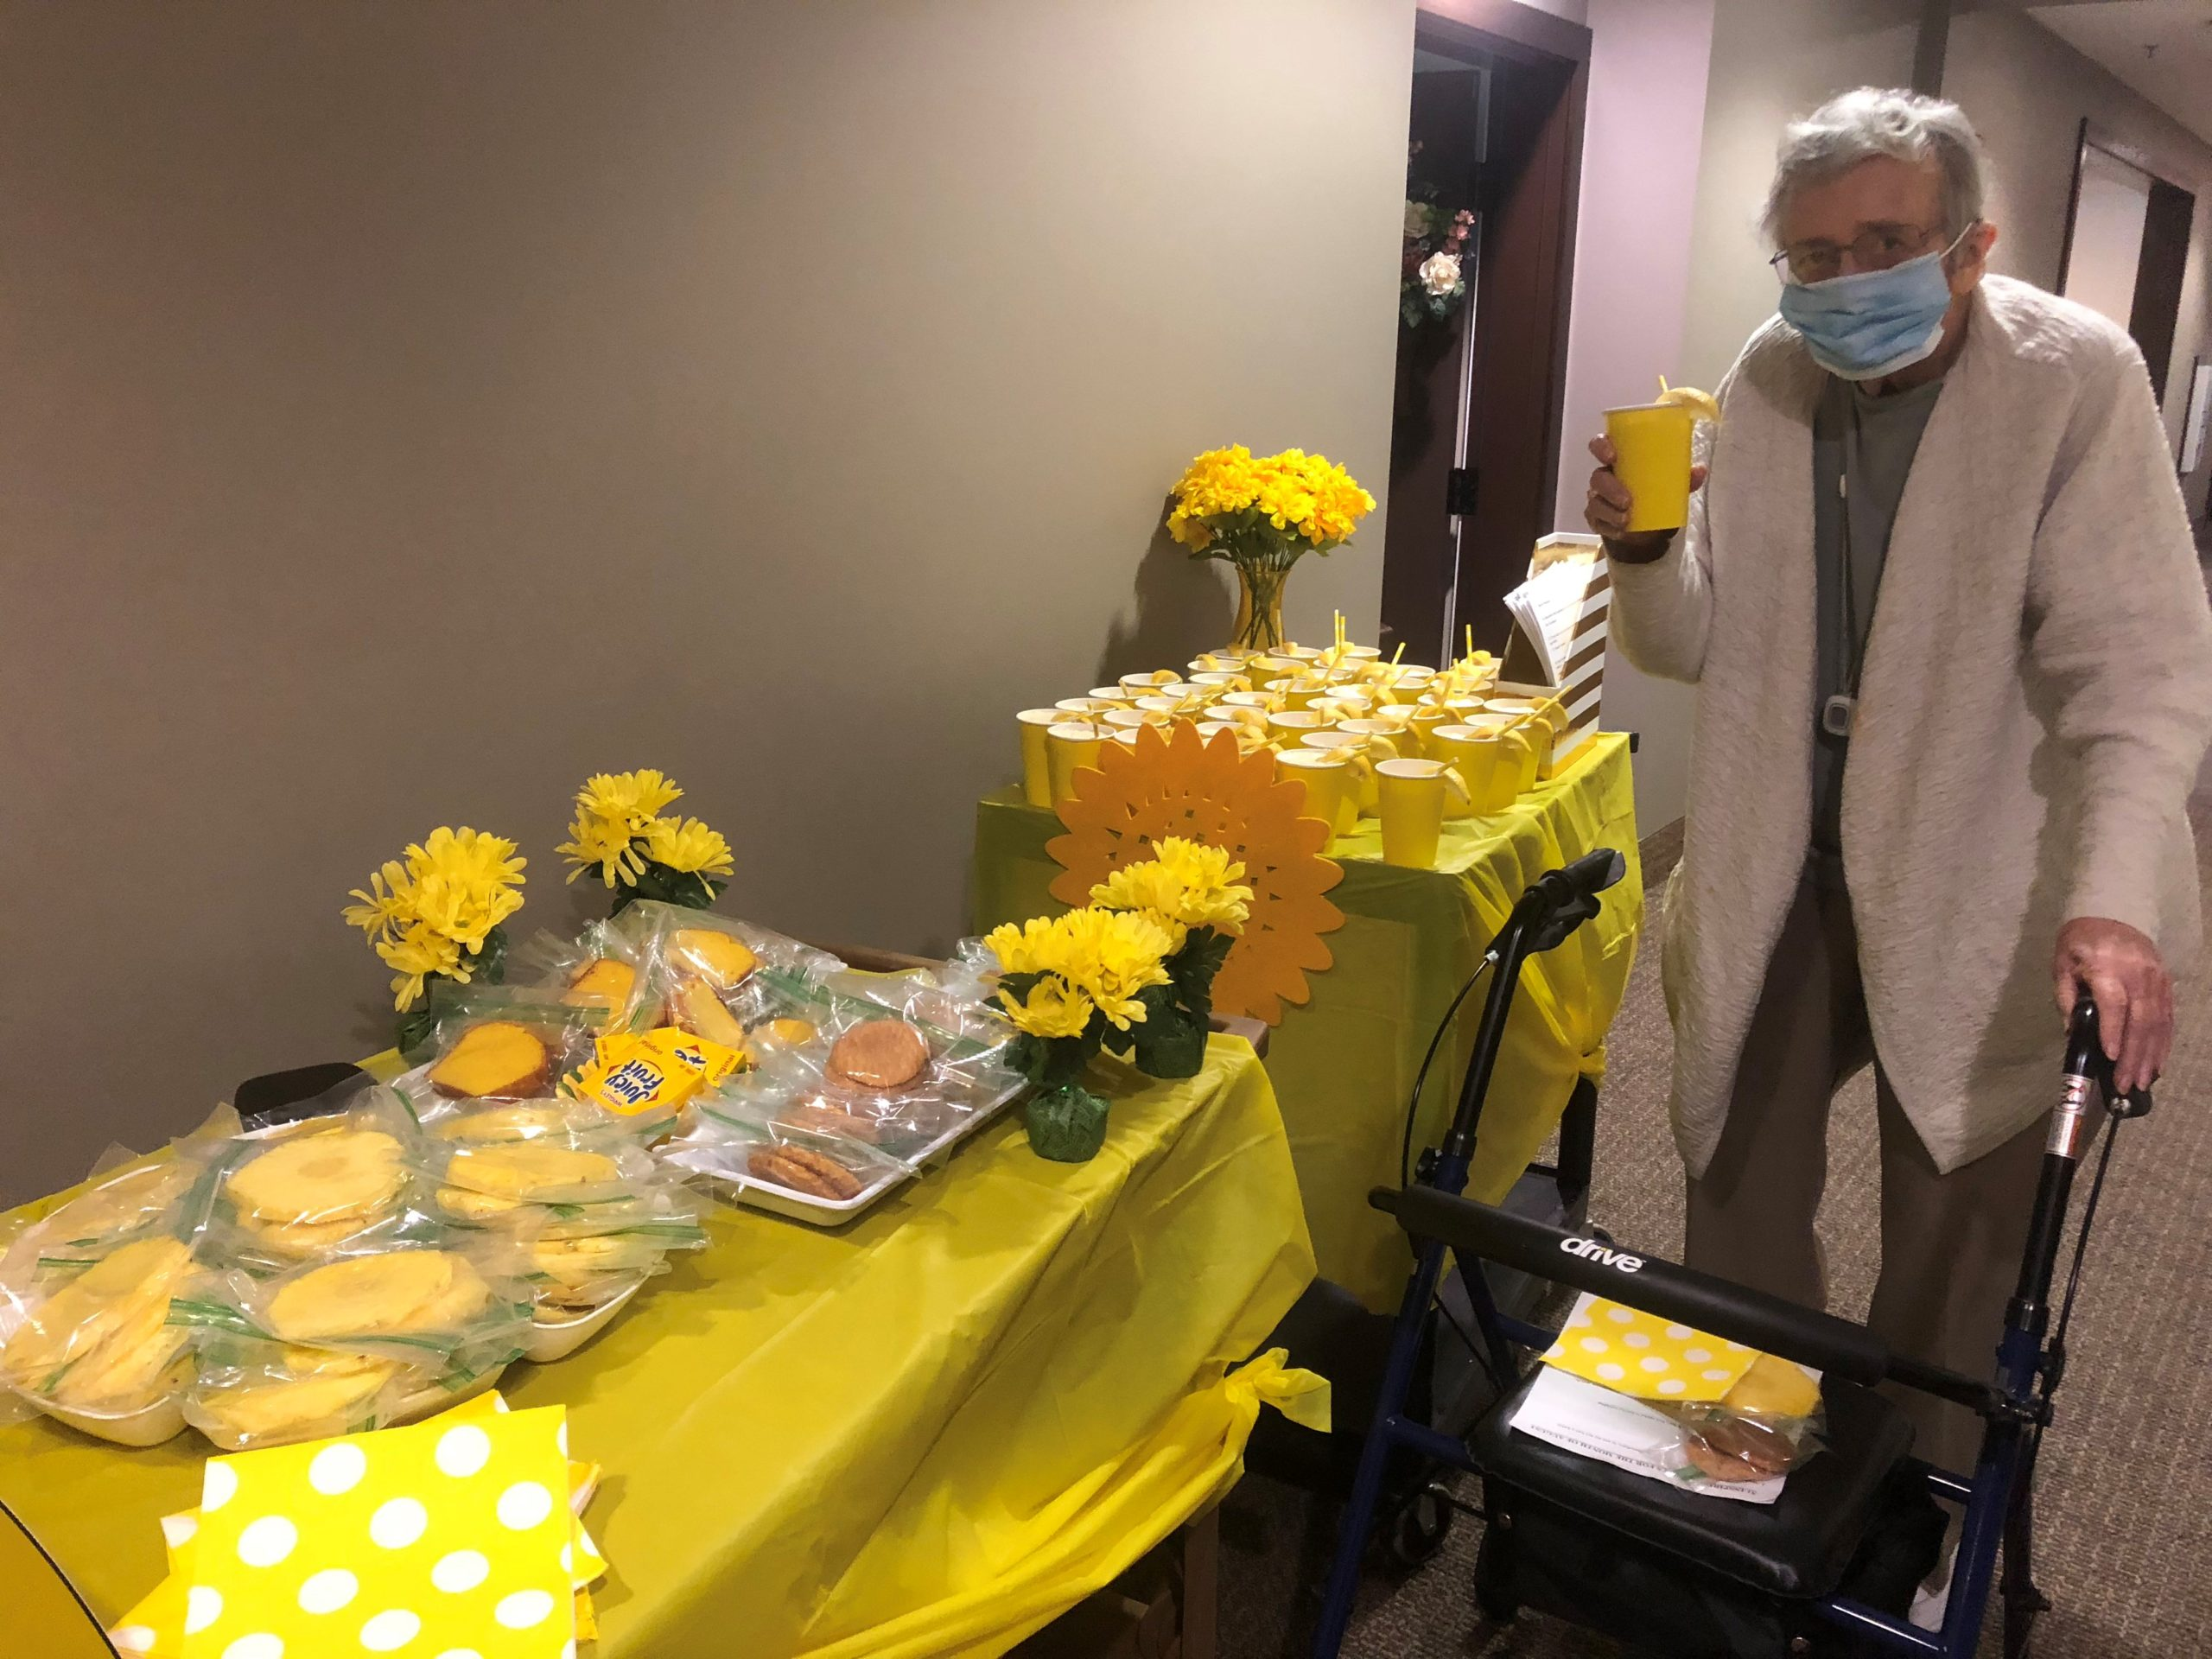 Lois is visited by a weekly surprise cart that had a Sunshine Theme! Residents were treated to Lemonade Frostys, Fresh Pineapple, Lemon Cake, Snickerdoodle Cookies, and Fun Sunshine Songs!